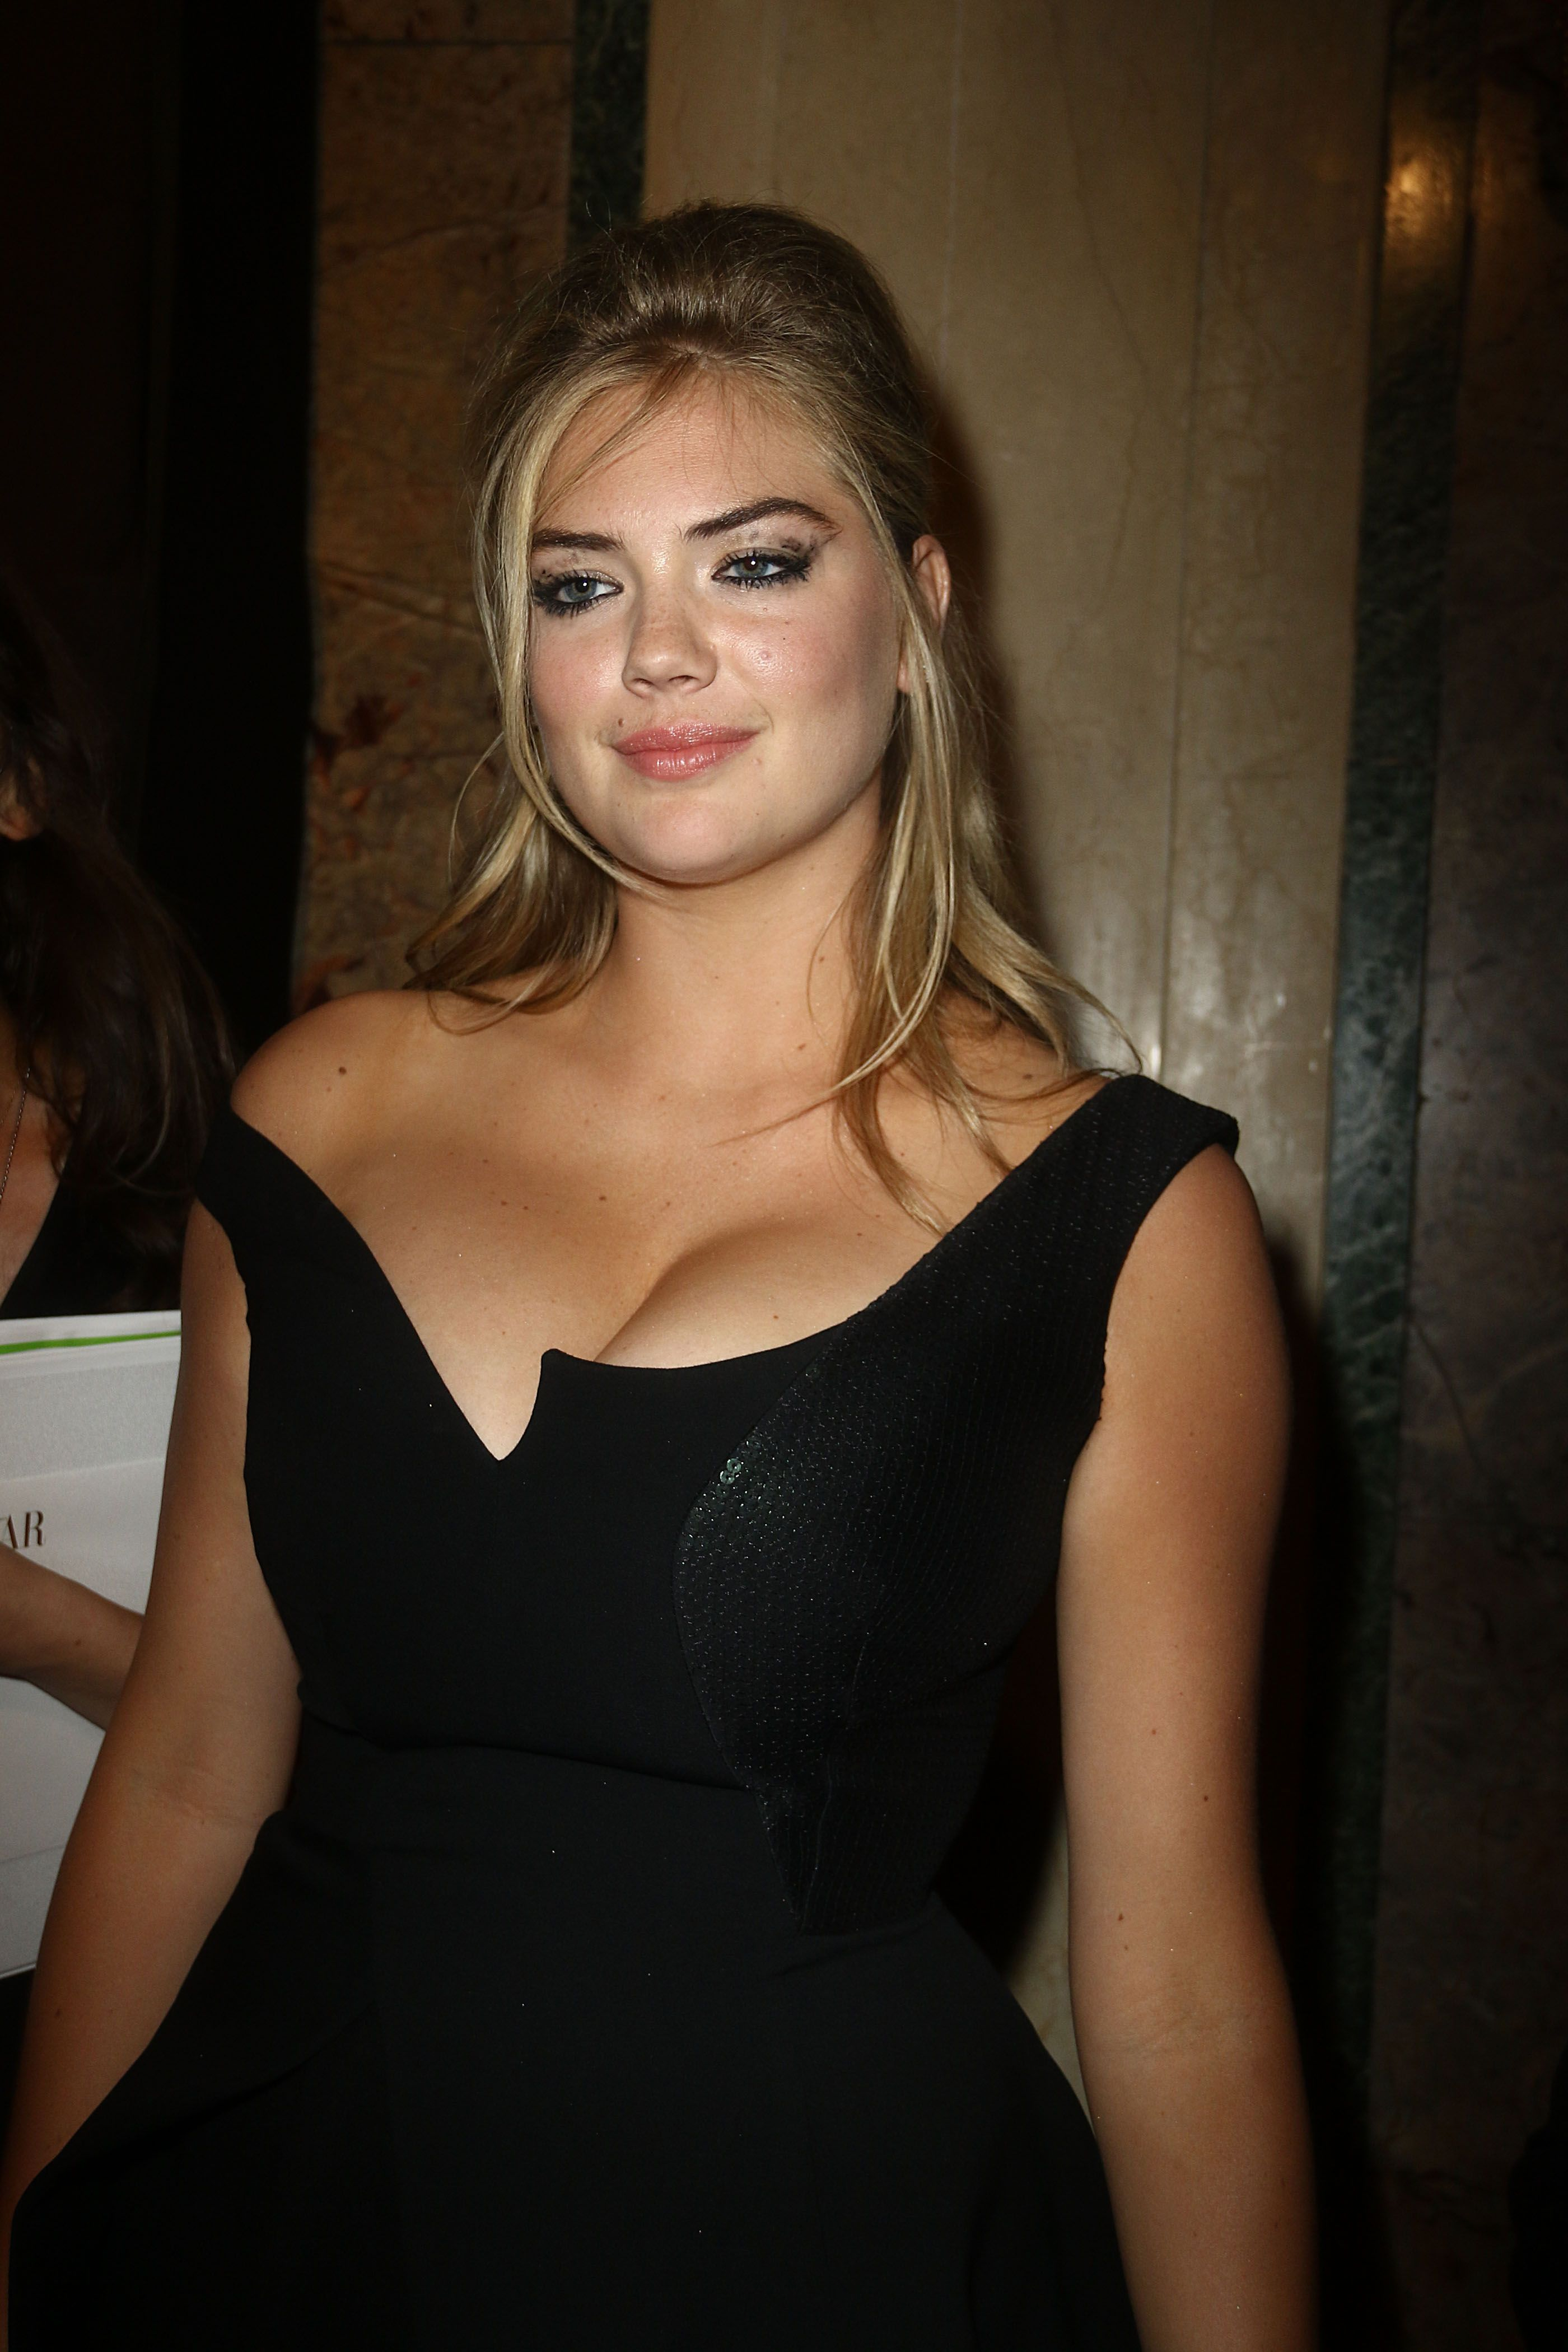 Kate Upton pussy showing